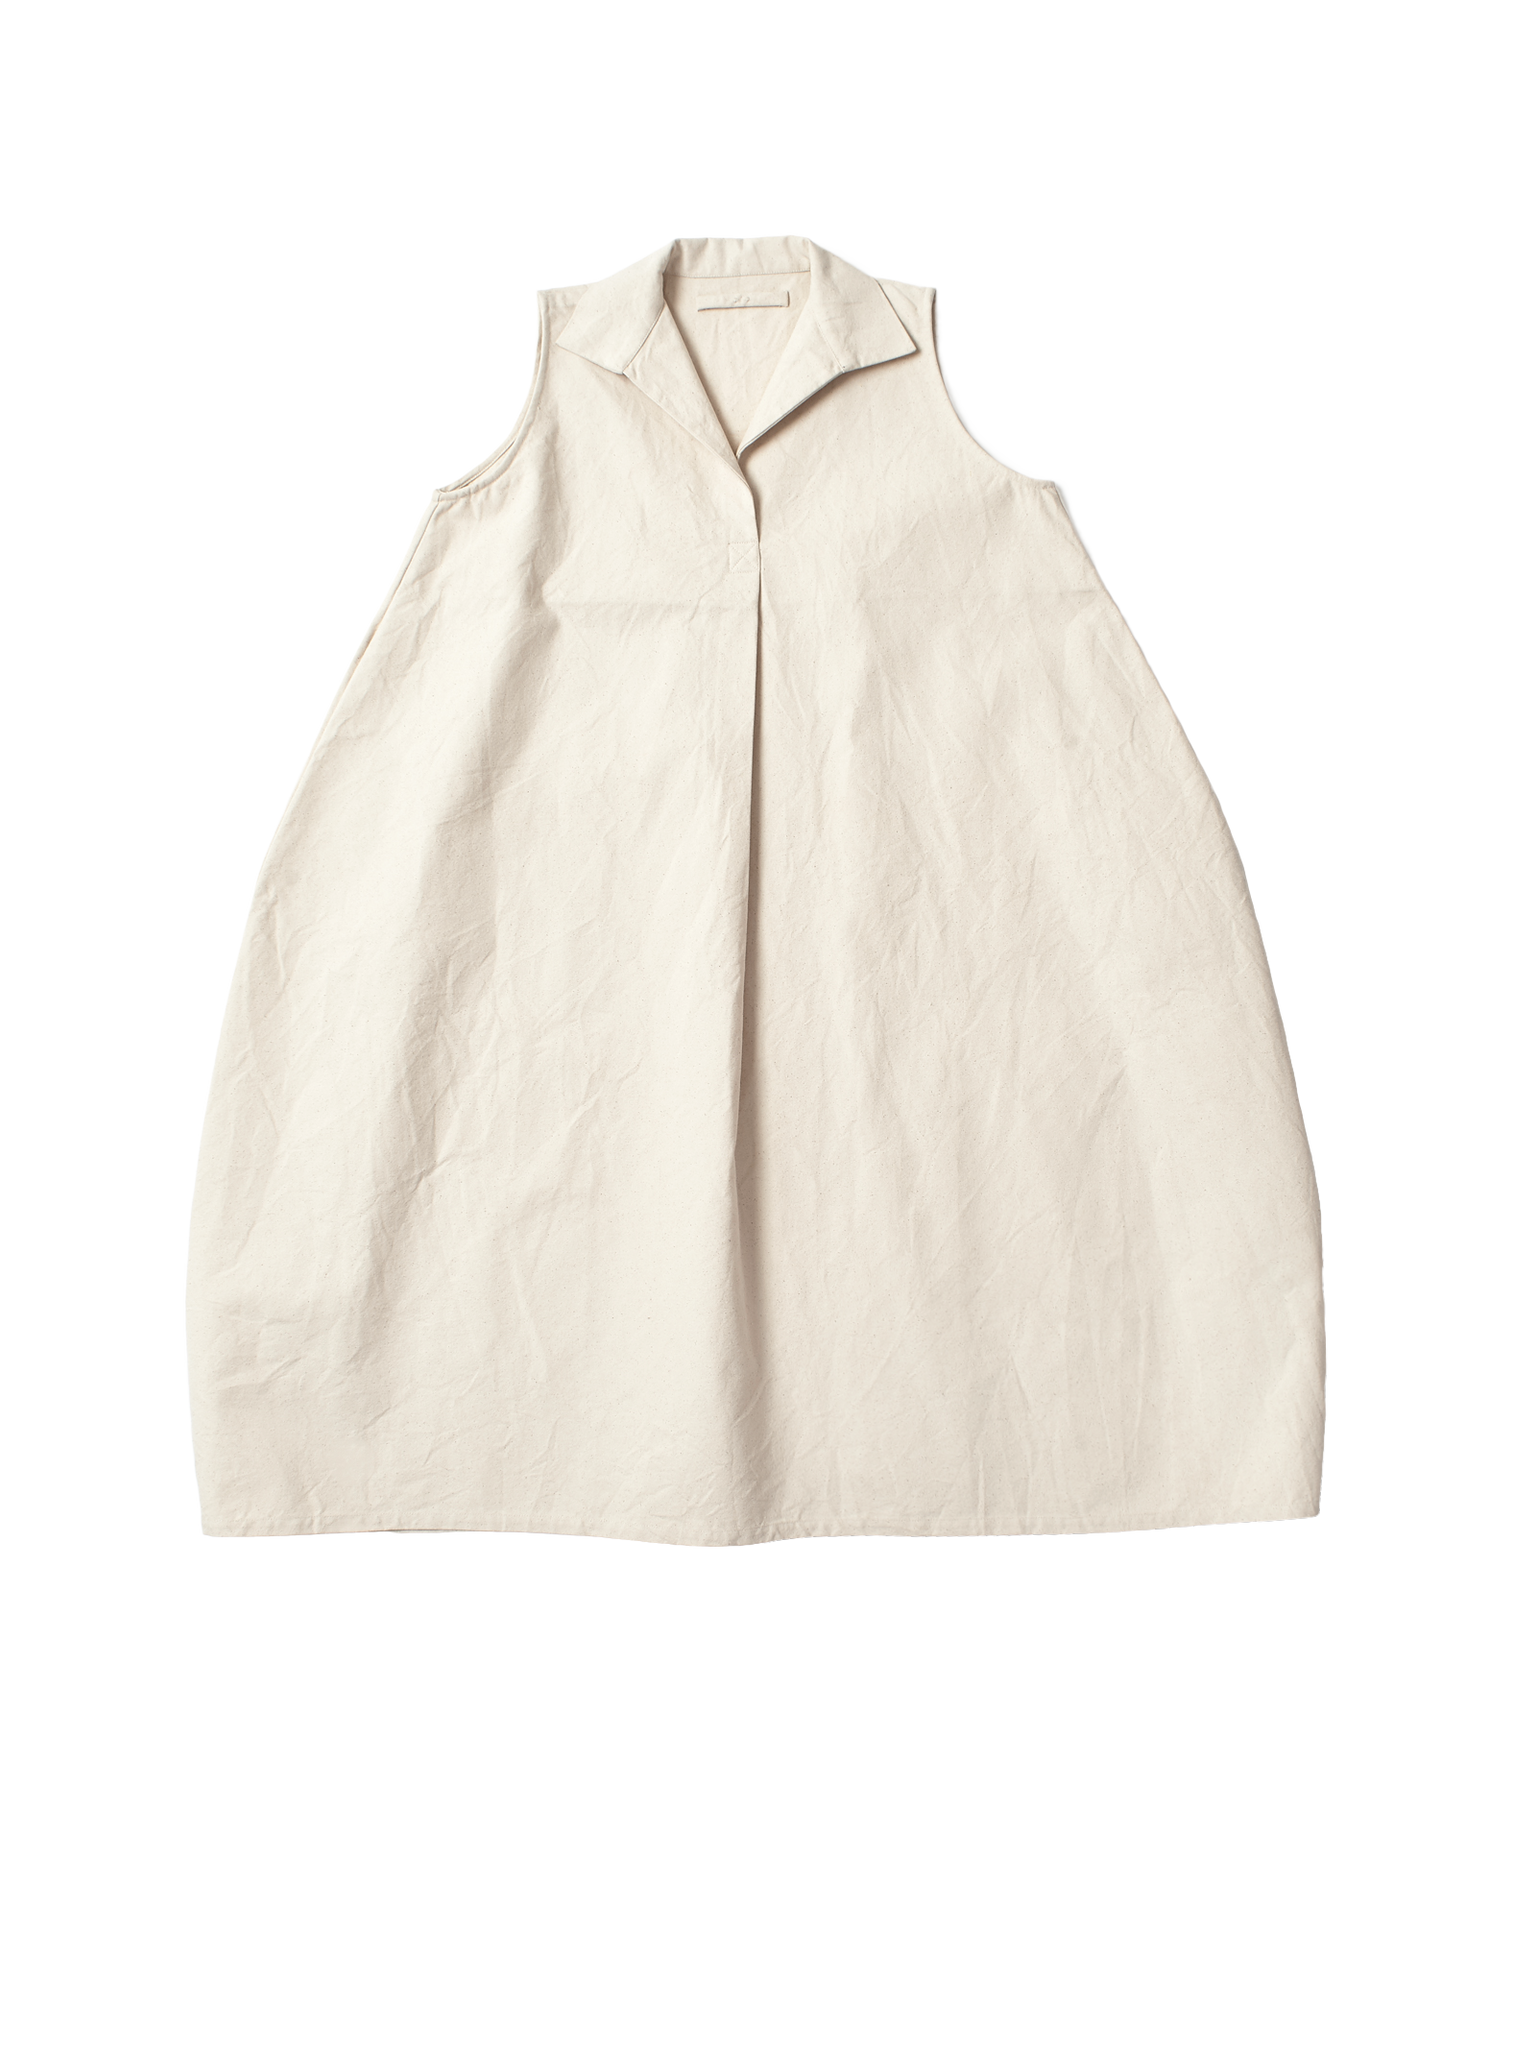 cream tulip dress with collar in canvas